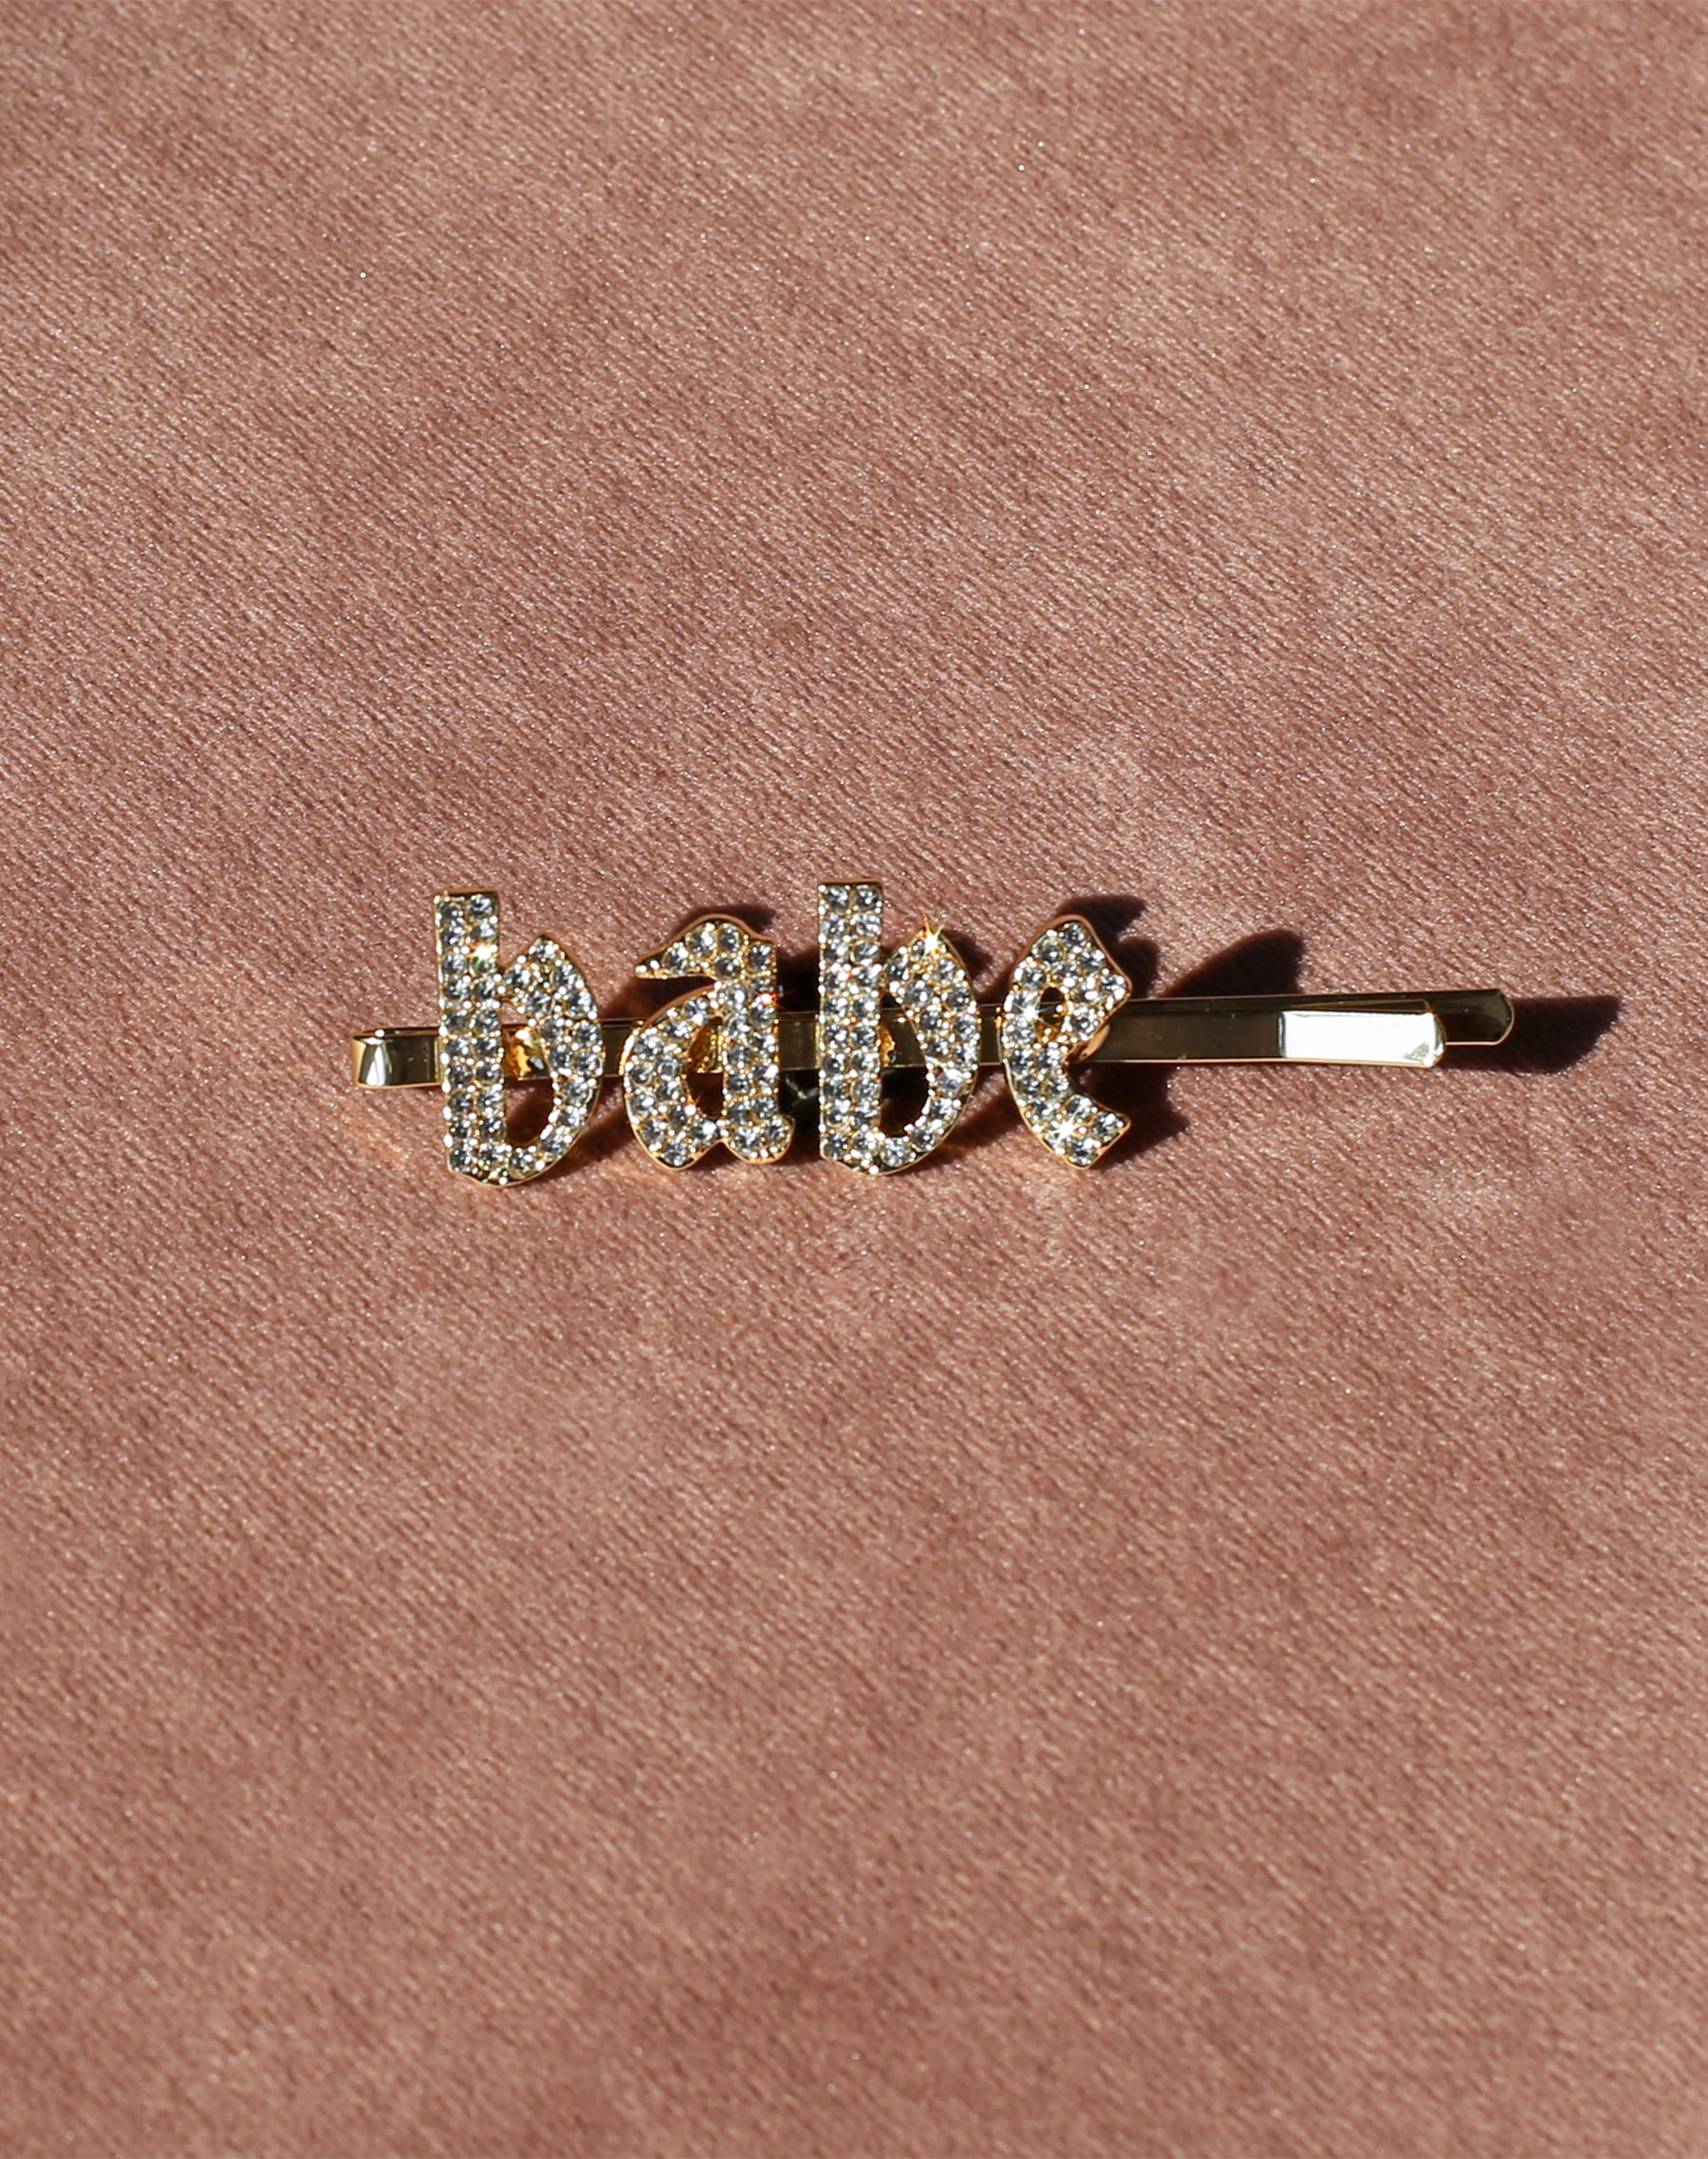 This is a photo of the Babe Rhinestone Hair Clip in Gold by Brunette the Label.